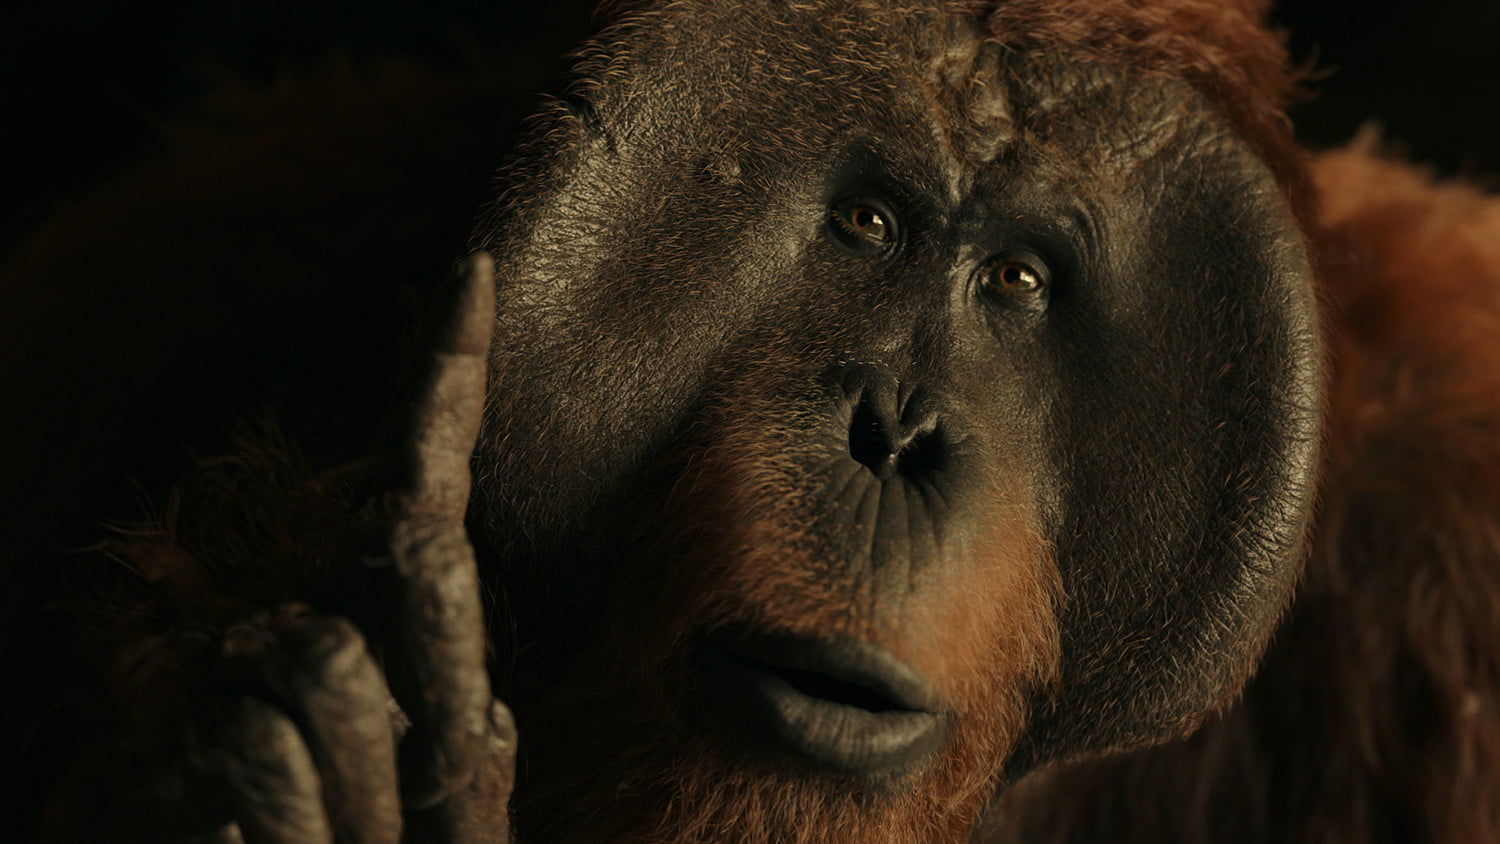 Planet of the Apes (2001) Planet of the Apes